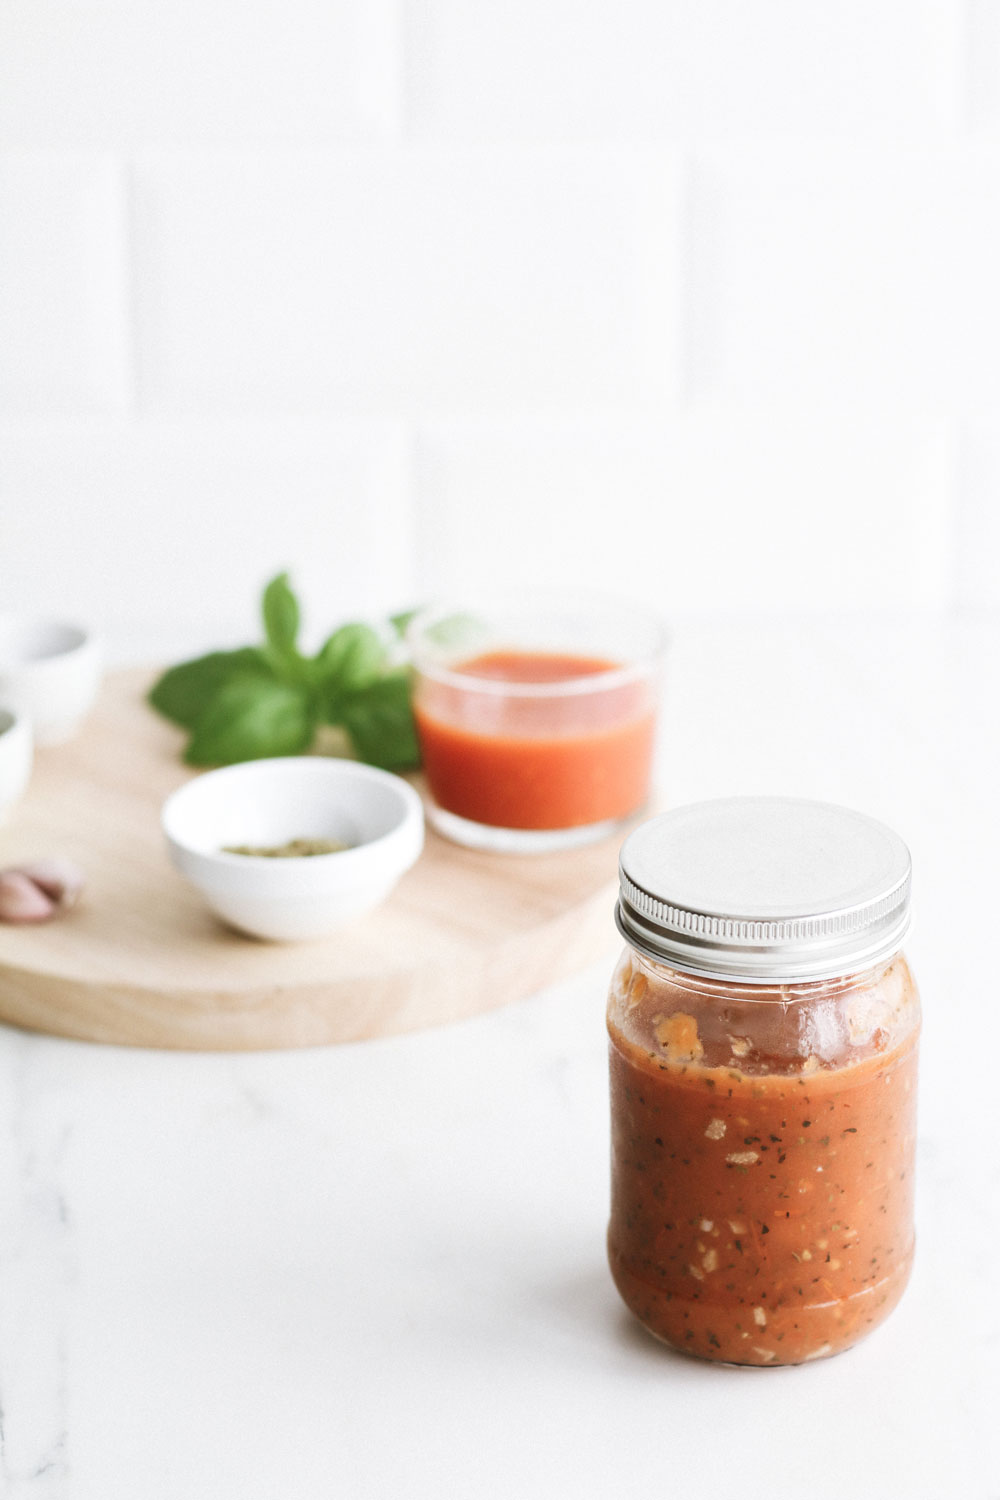 Lycopene Rich Tomato Sauce: Antioxidant and heart-protecting recipe to give yourself a youth boost! https://www.spotebi.com/recipes/lycopene-rich-tomato-sauce/